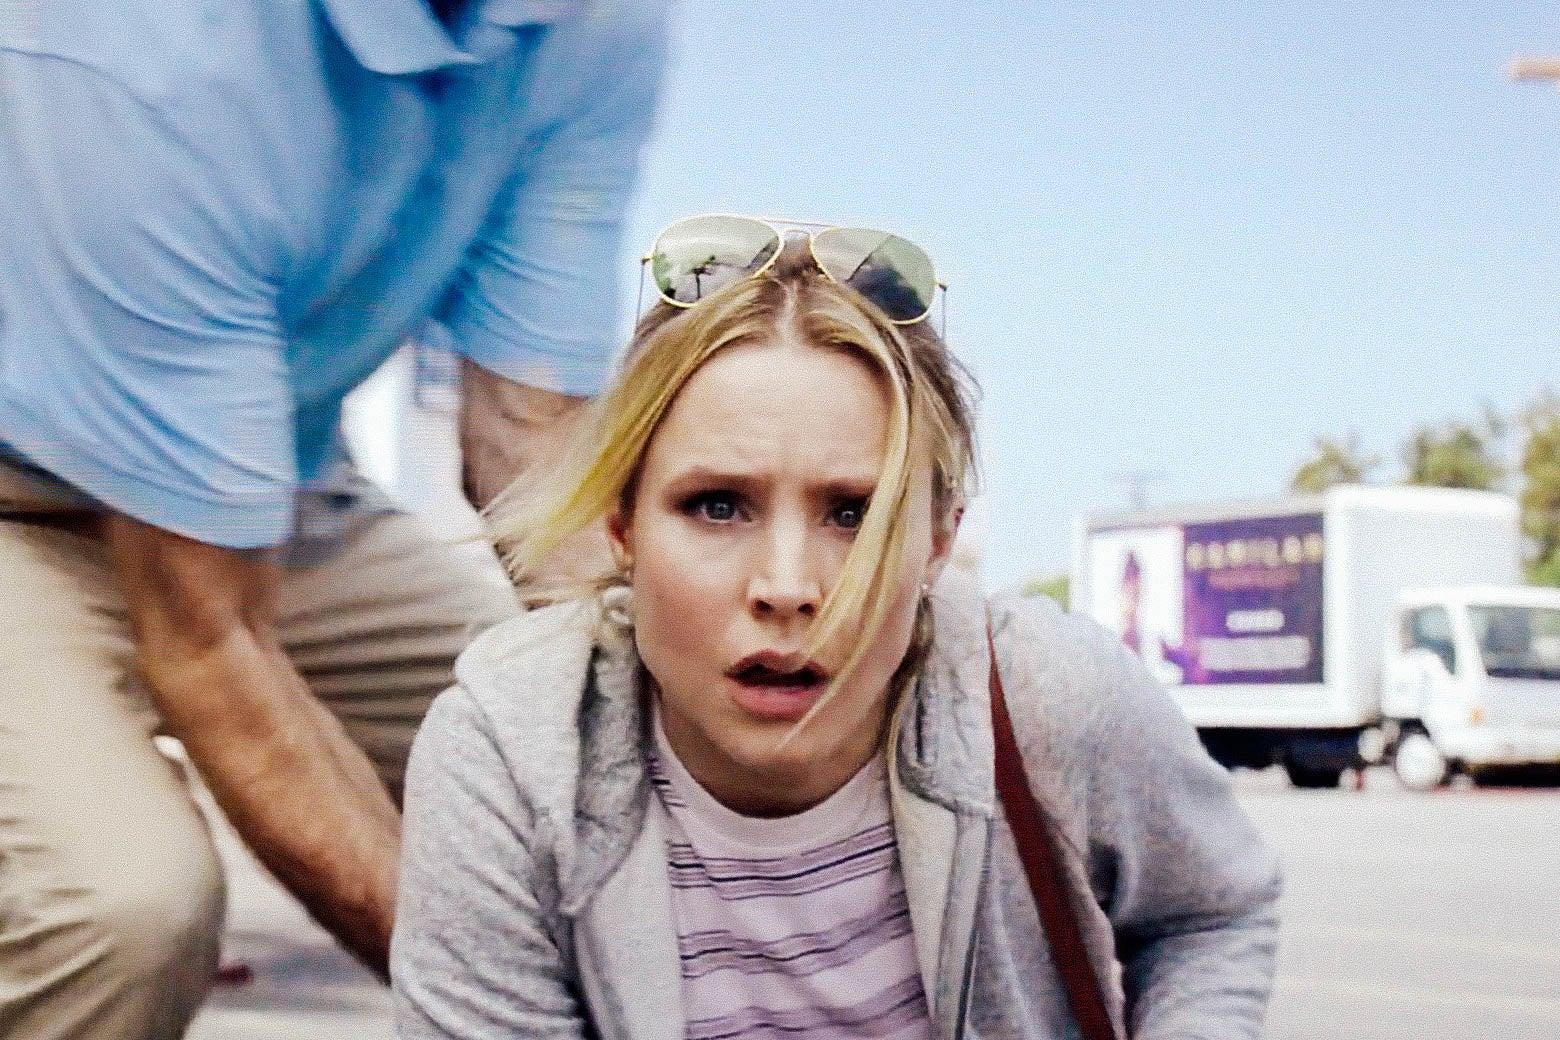 In a scene from The Good Place, Eleanor Shellstrop, played by Kristen Bell, looks dazed as she gets to her feet in a parking lot. A man in a blue polo helps her up, and a truck can be seen in the background.